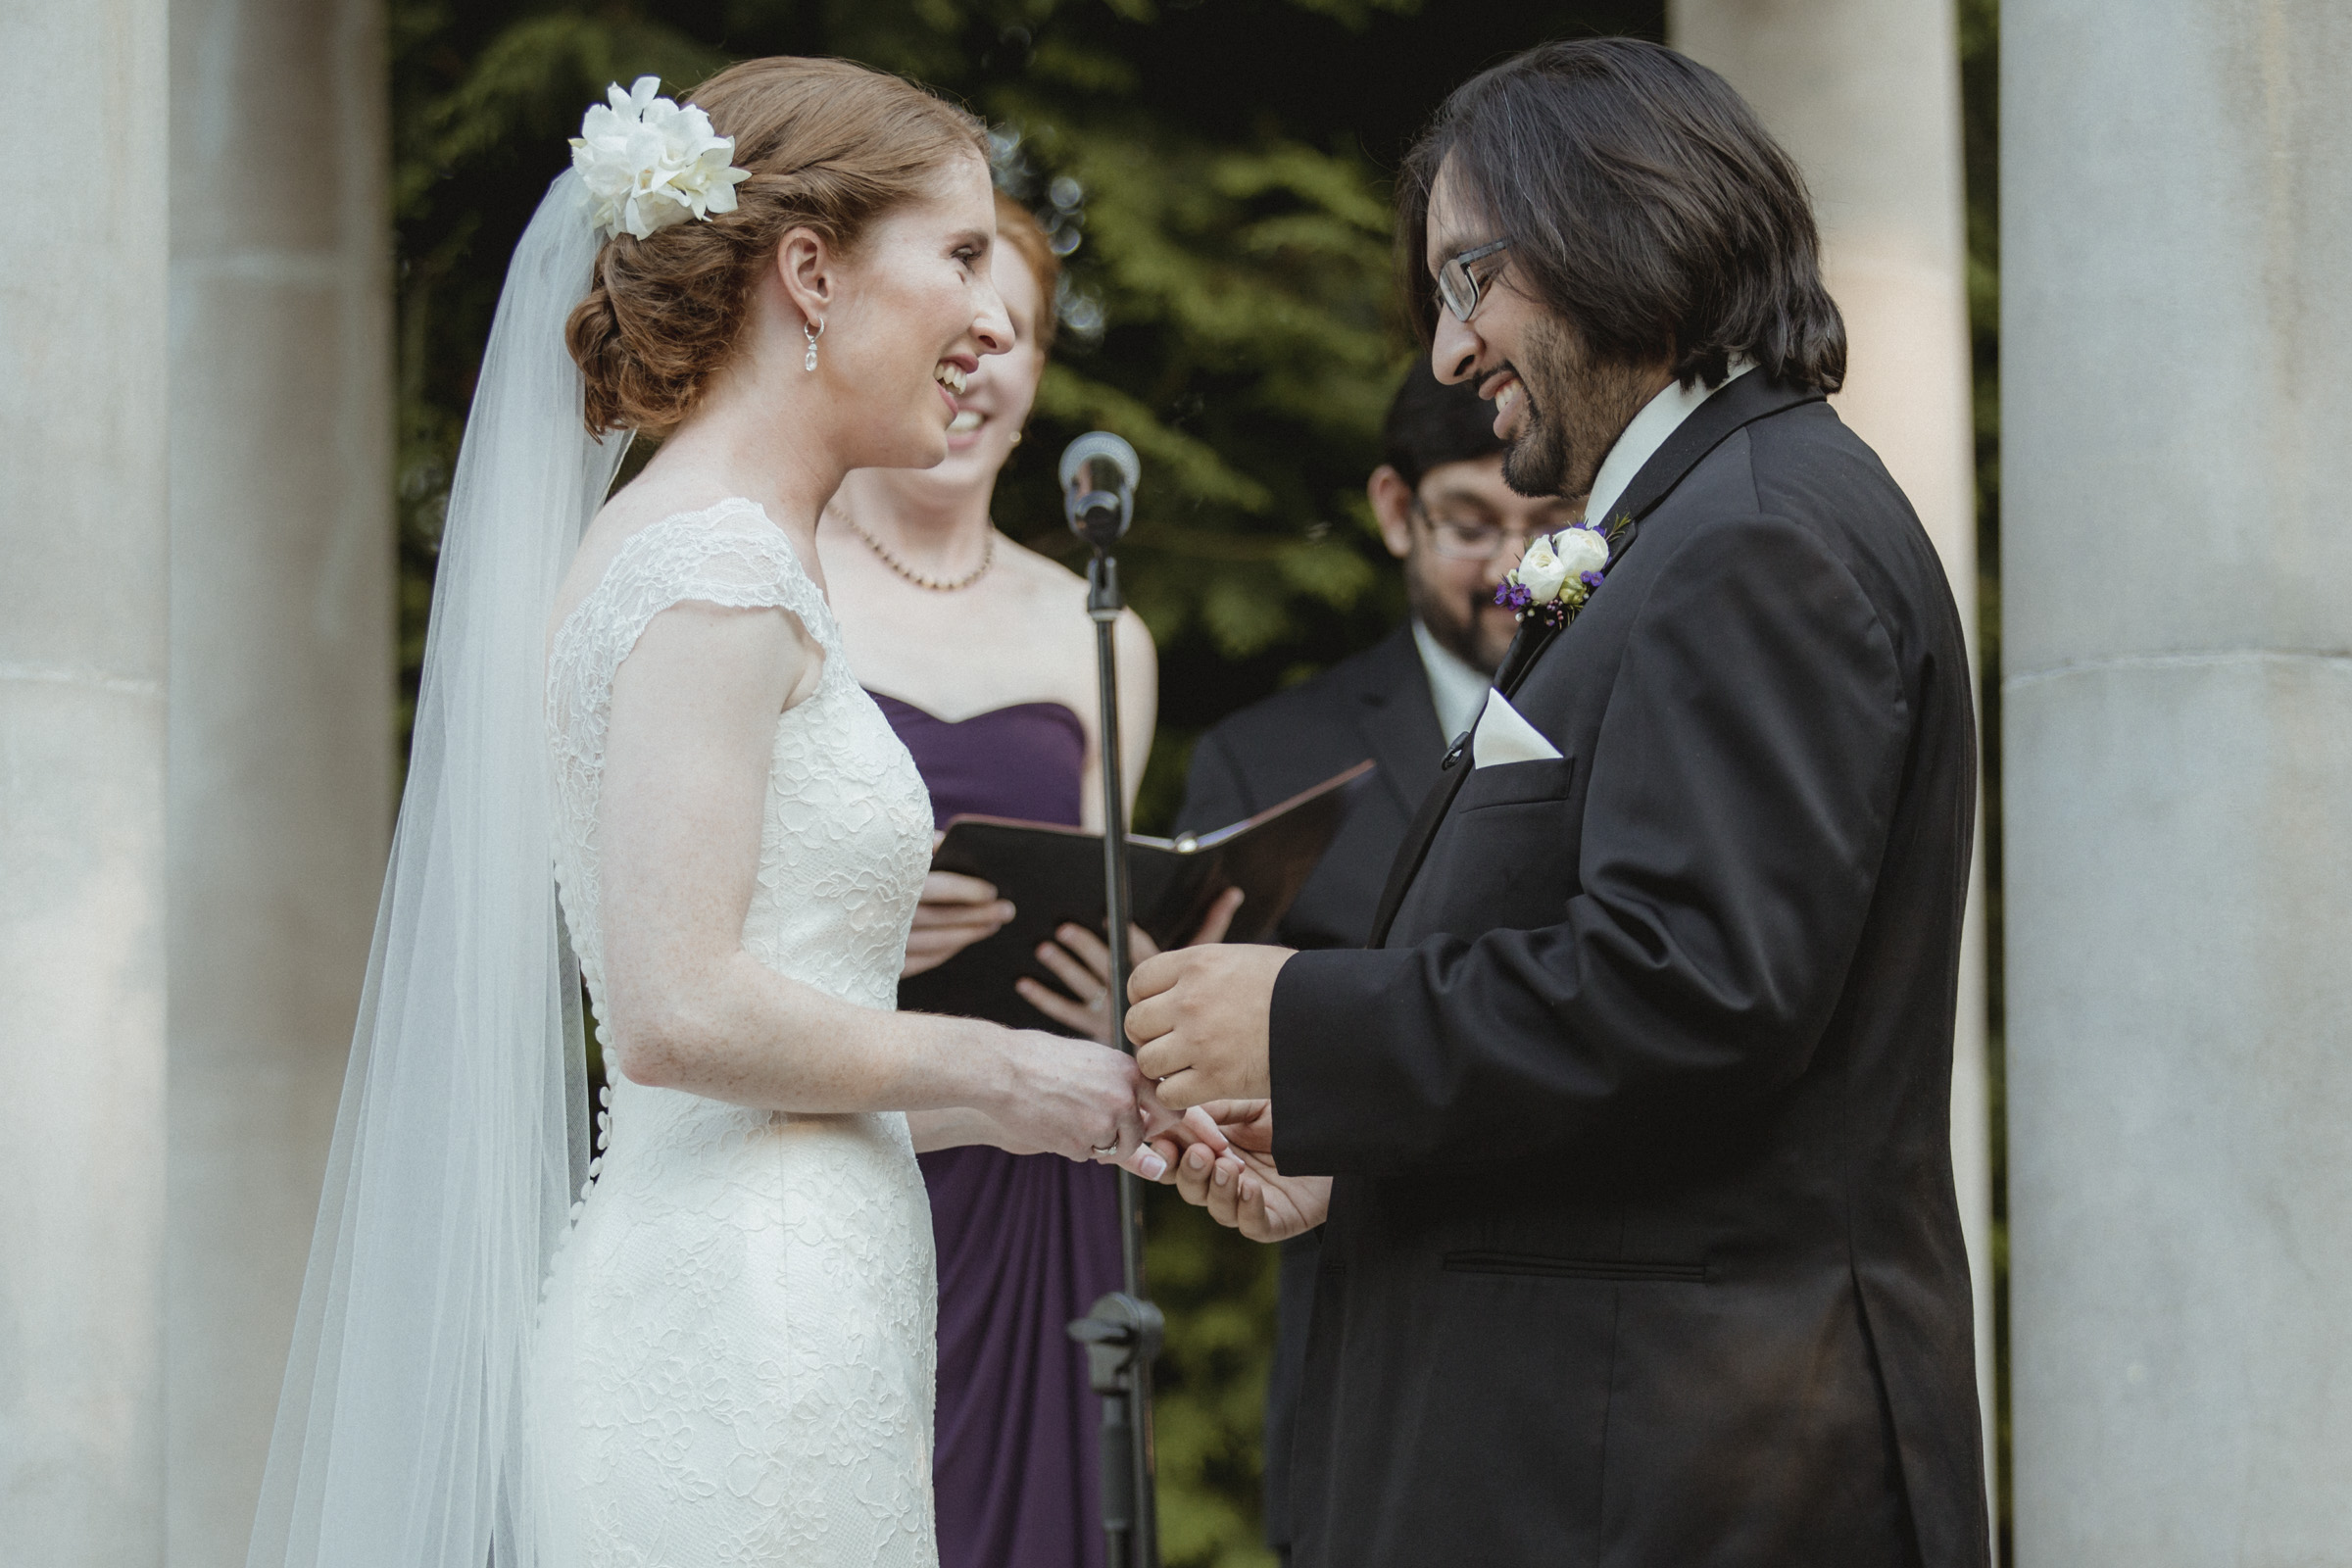 Groom laughs as he puts ring on bride's finger - Estate at Florentine Gardens wedding - Hudson Valley Wedding - Kelsey & Anish's wedding - Amy Sims Photography